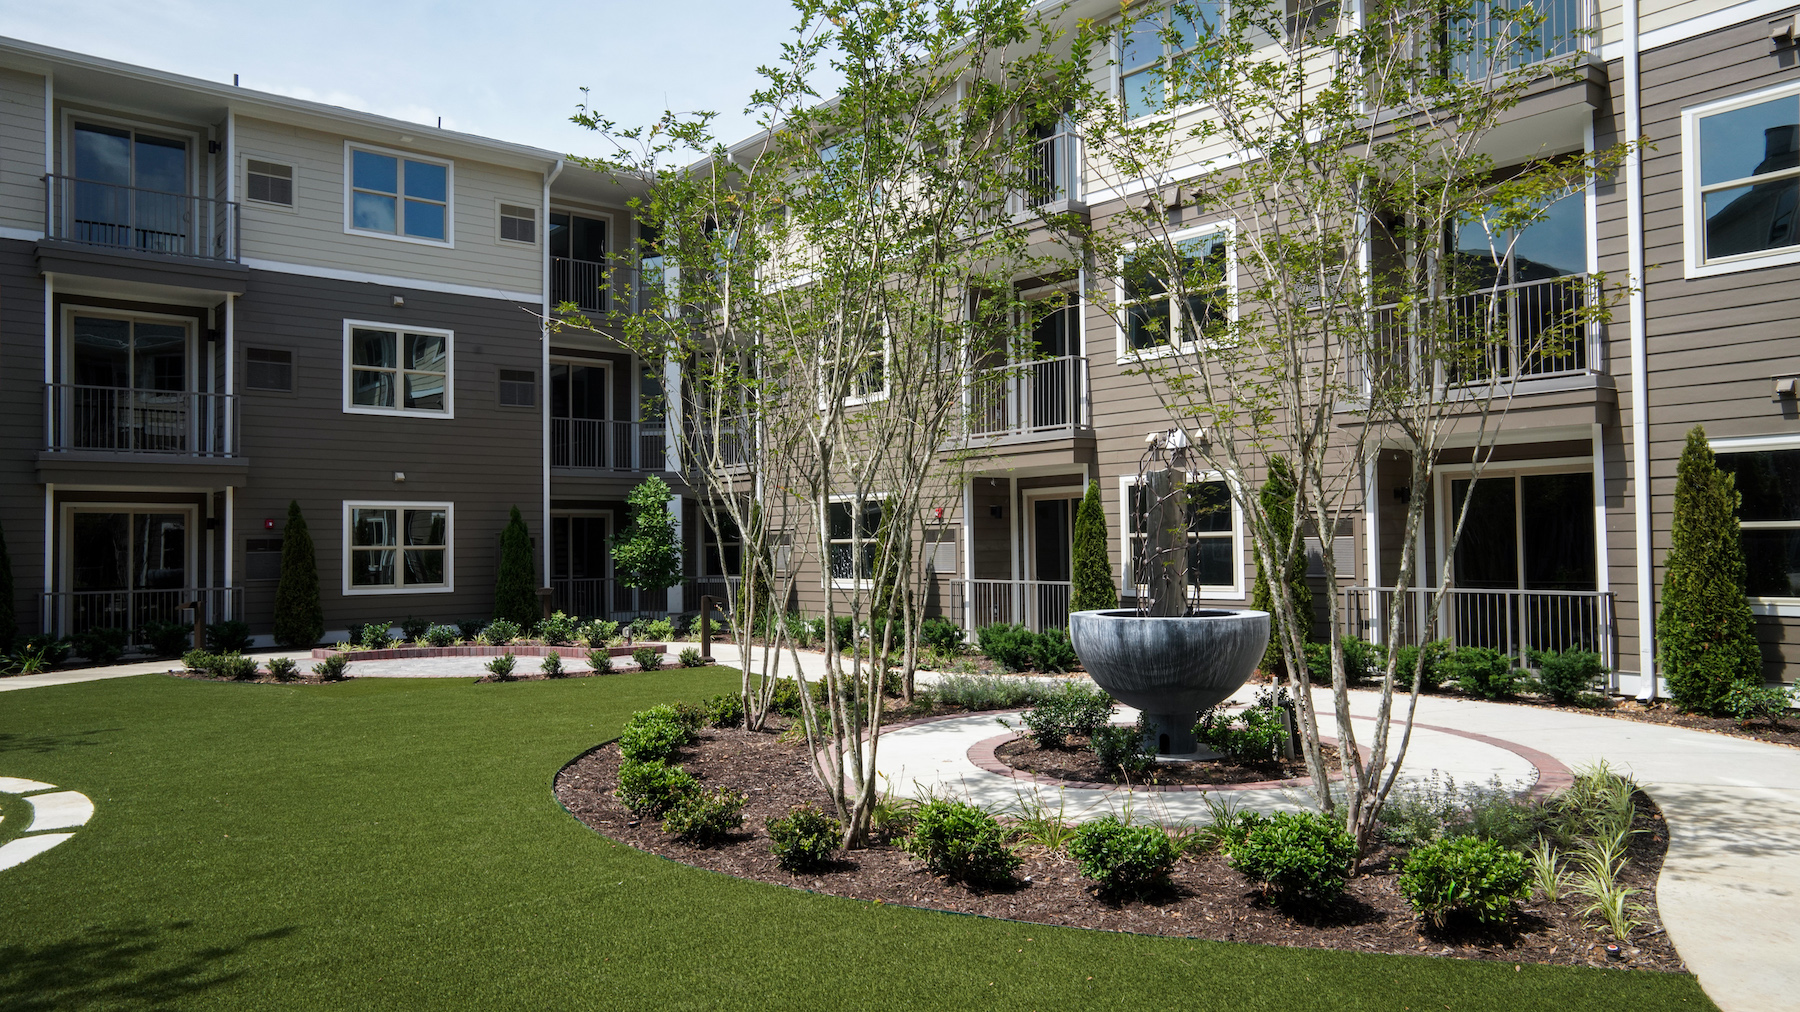 Senior living community landscape and pathway